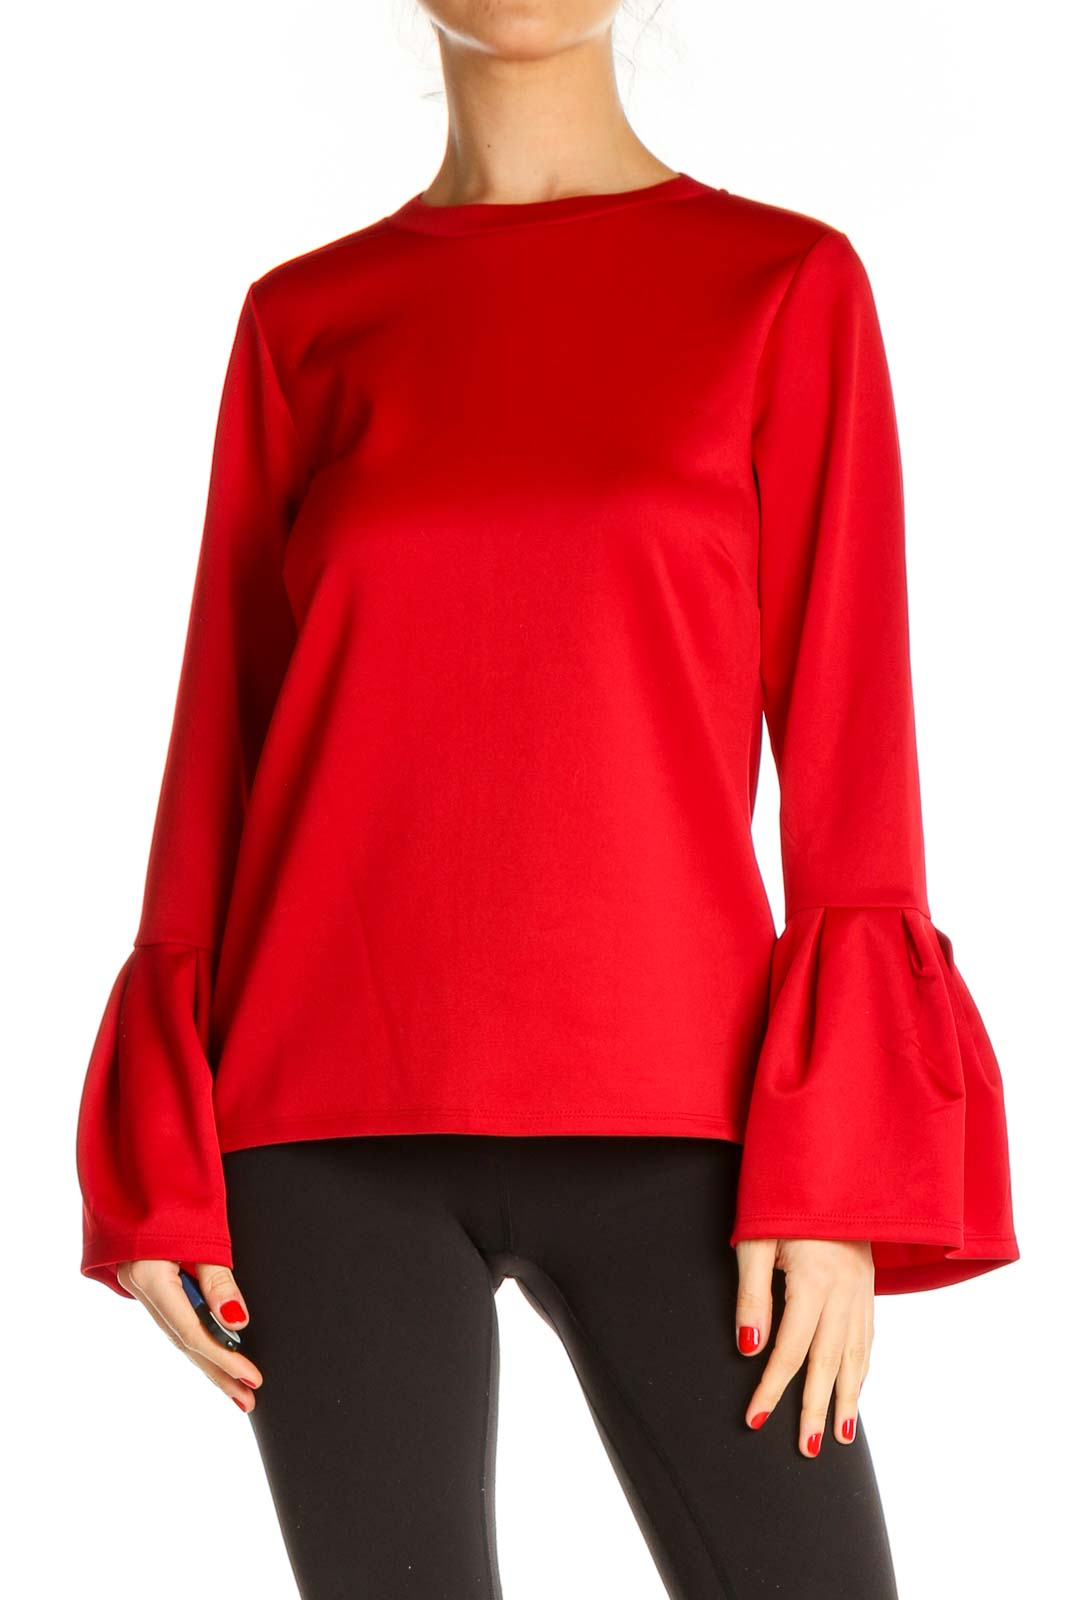 Red Chic Blouse Front